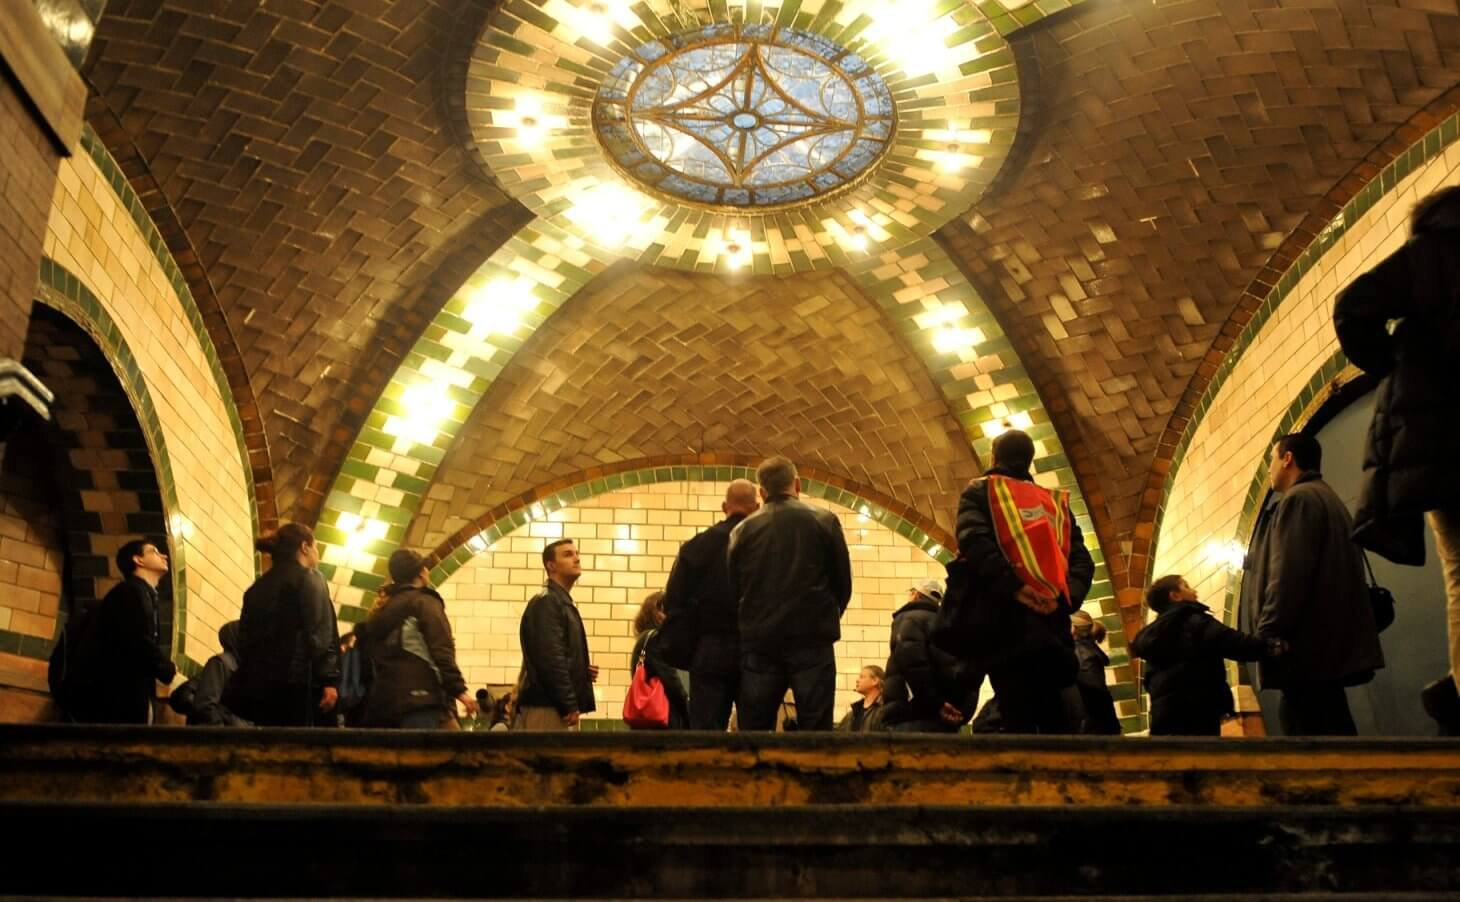 Most People Don't Know About This Gorgeous Abandoned Subway Station Hiding Under New York City